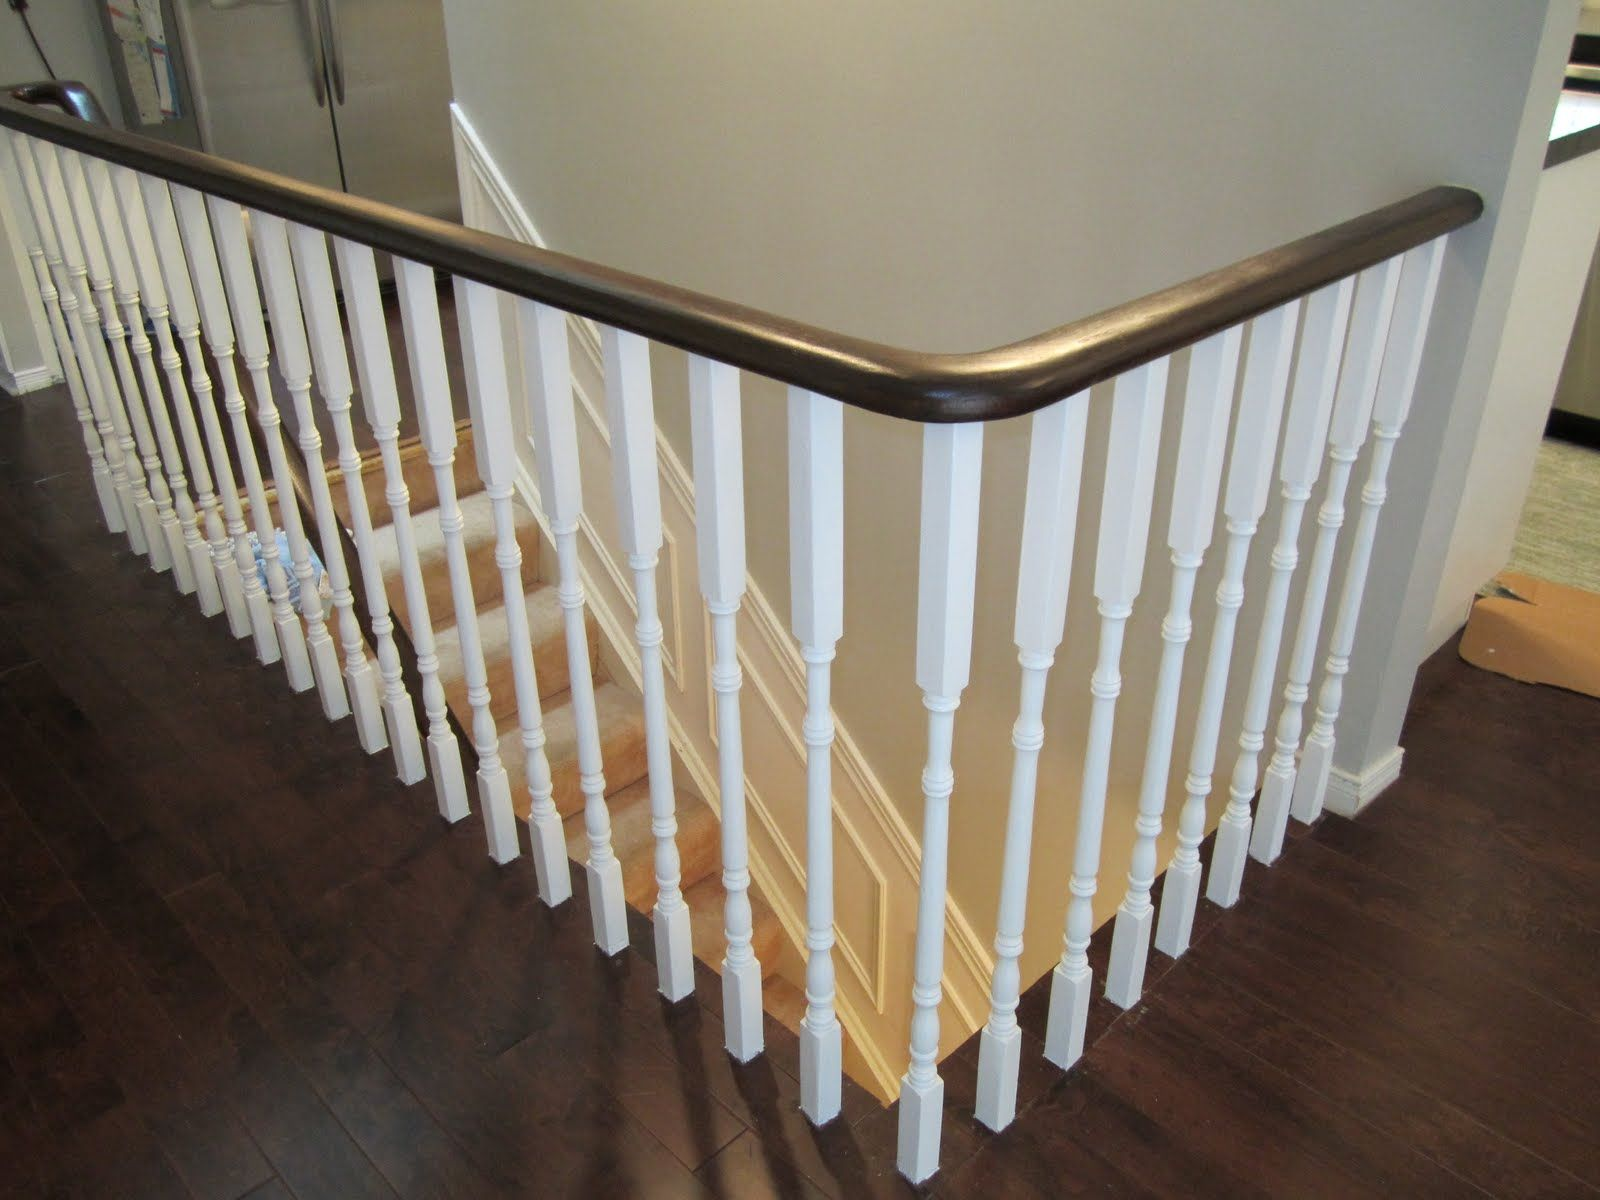 See how updating an oak stair or handrail could look with walnut stain and white rails